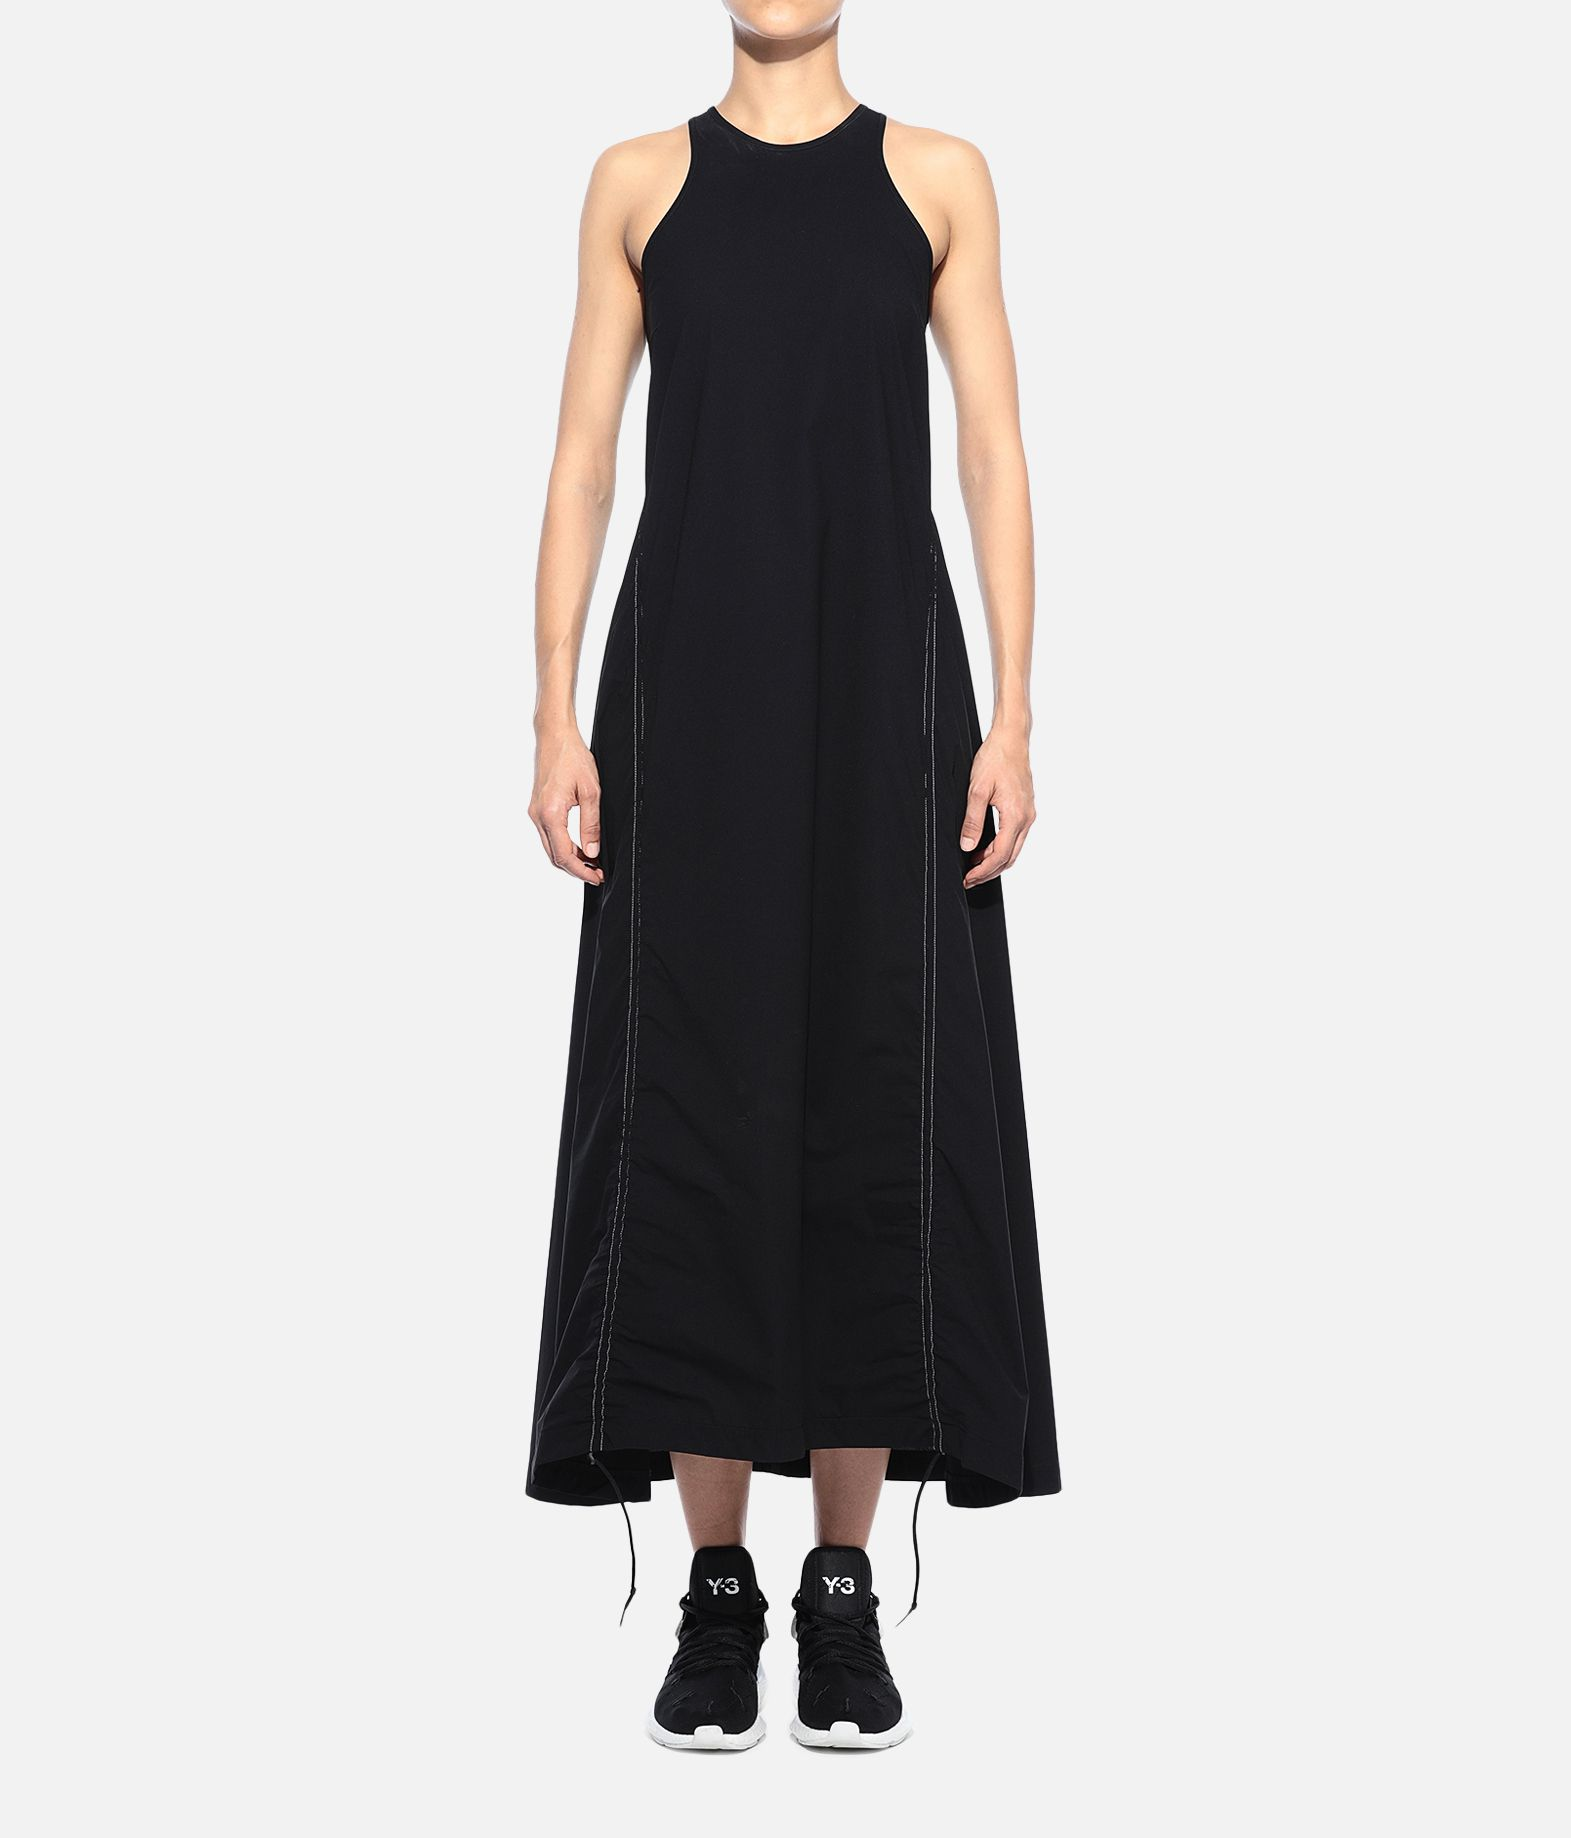 Y-3 Y-3 Light 3-Stripes Dress Dress Woman r